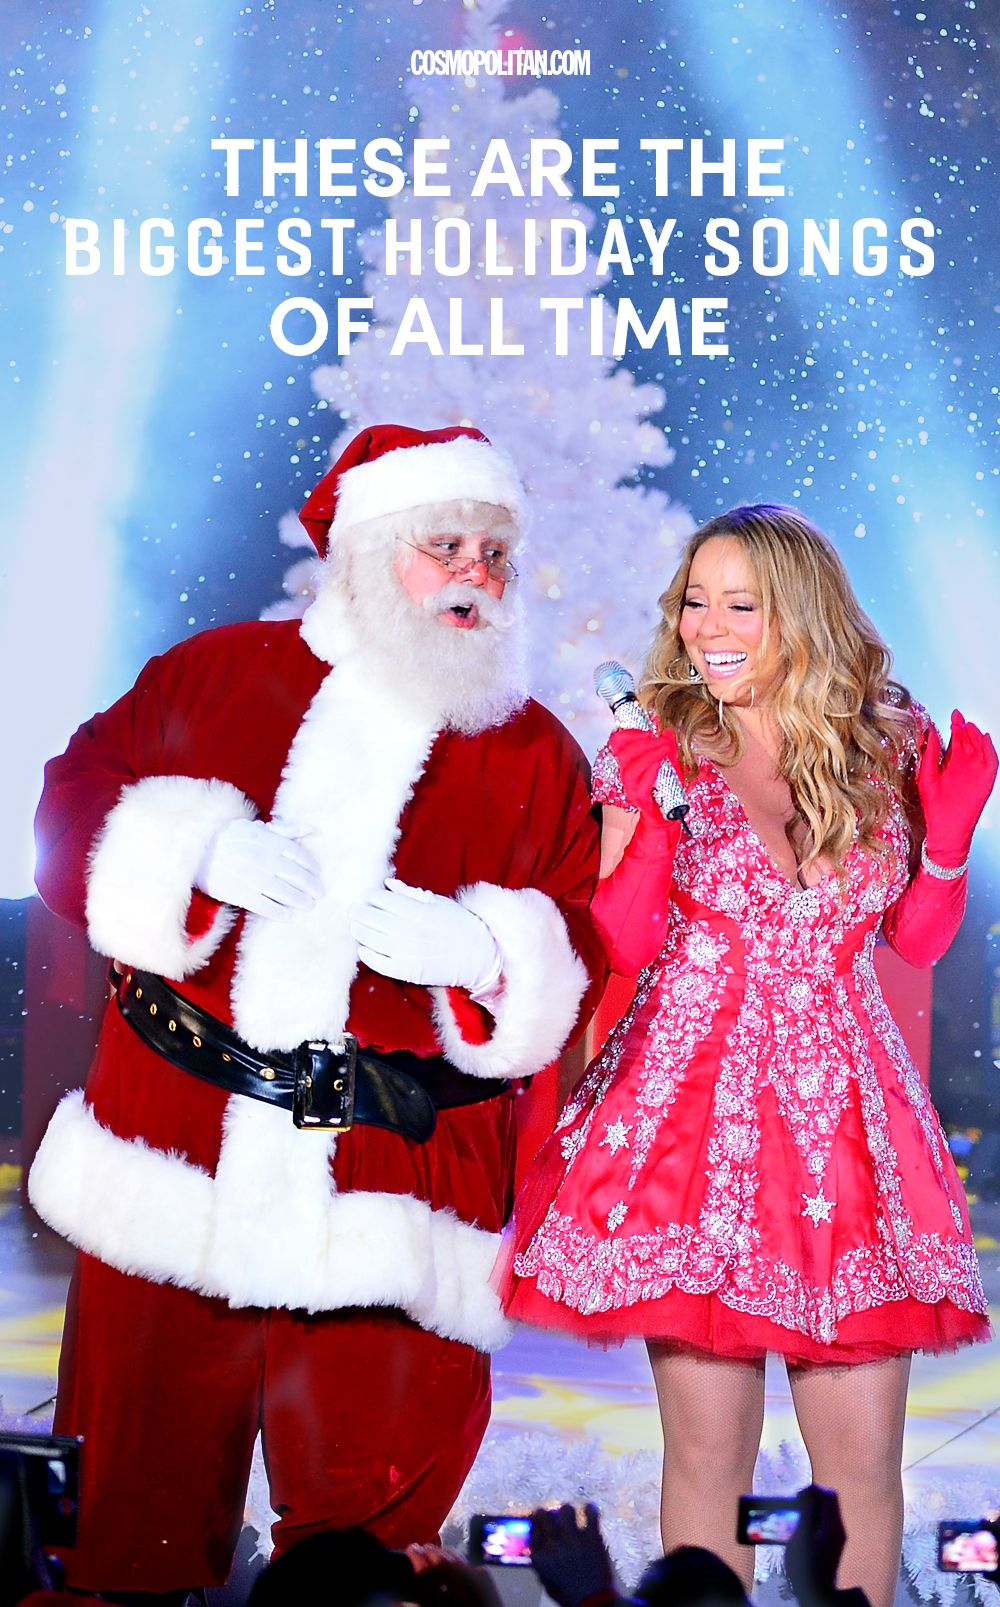 These Are the Biggest Holiday Songs of All Time